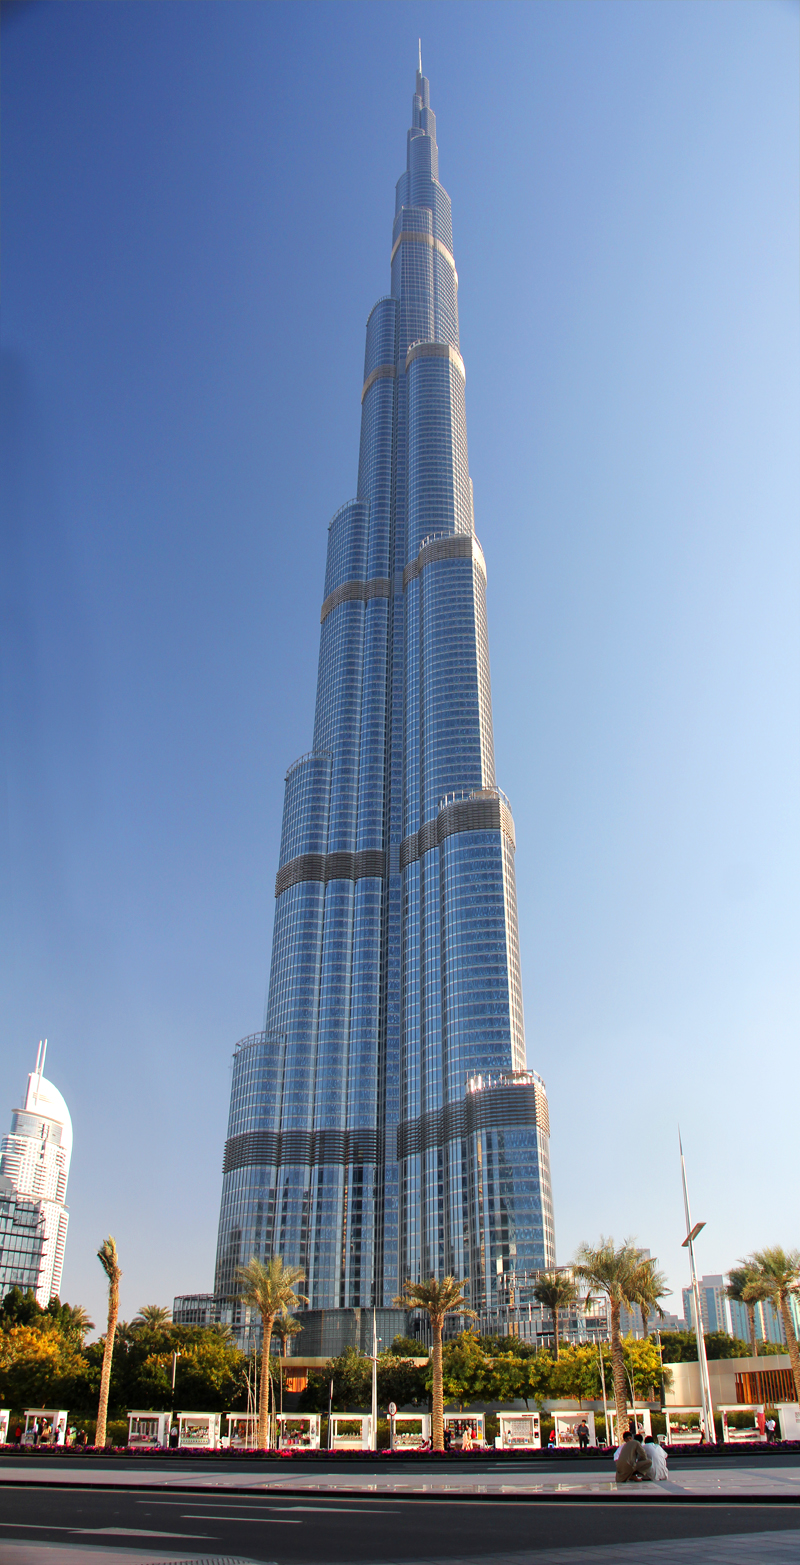 Burj Khalifa Dubai Tallest Building In The World 16 Pic Awesome Pictures